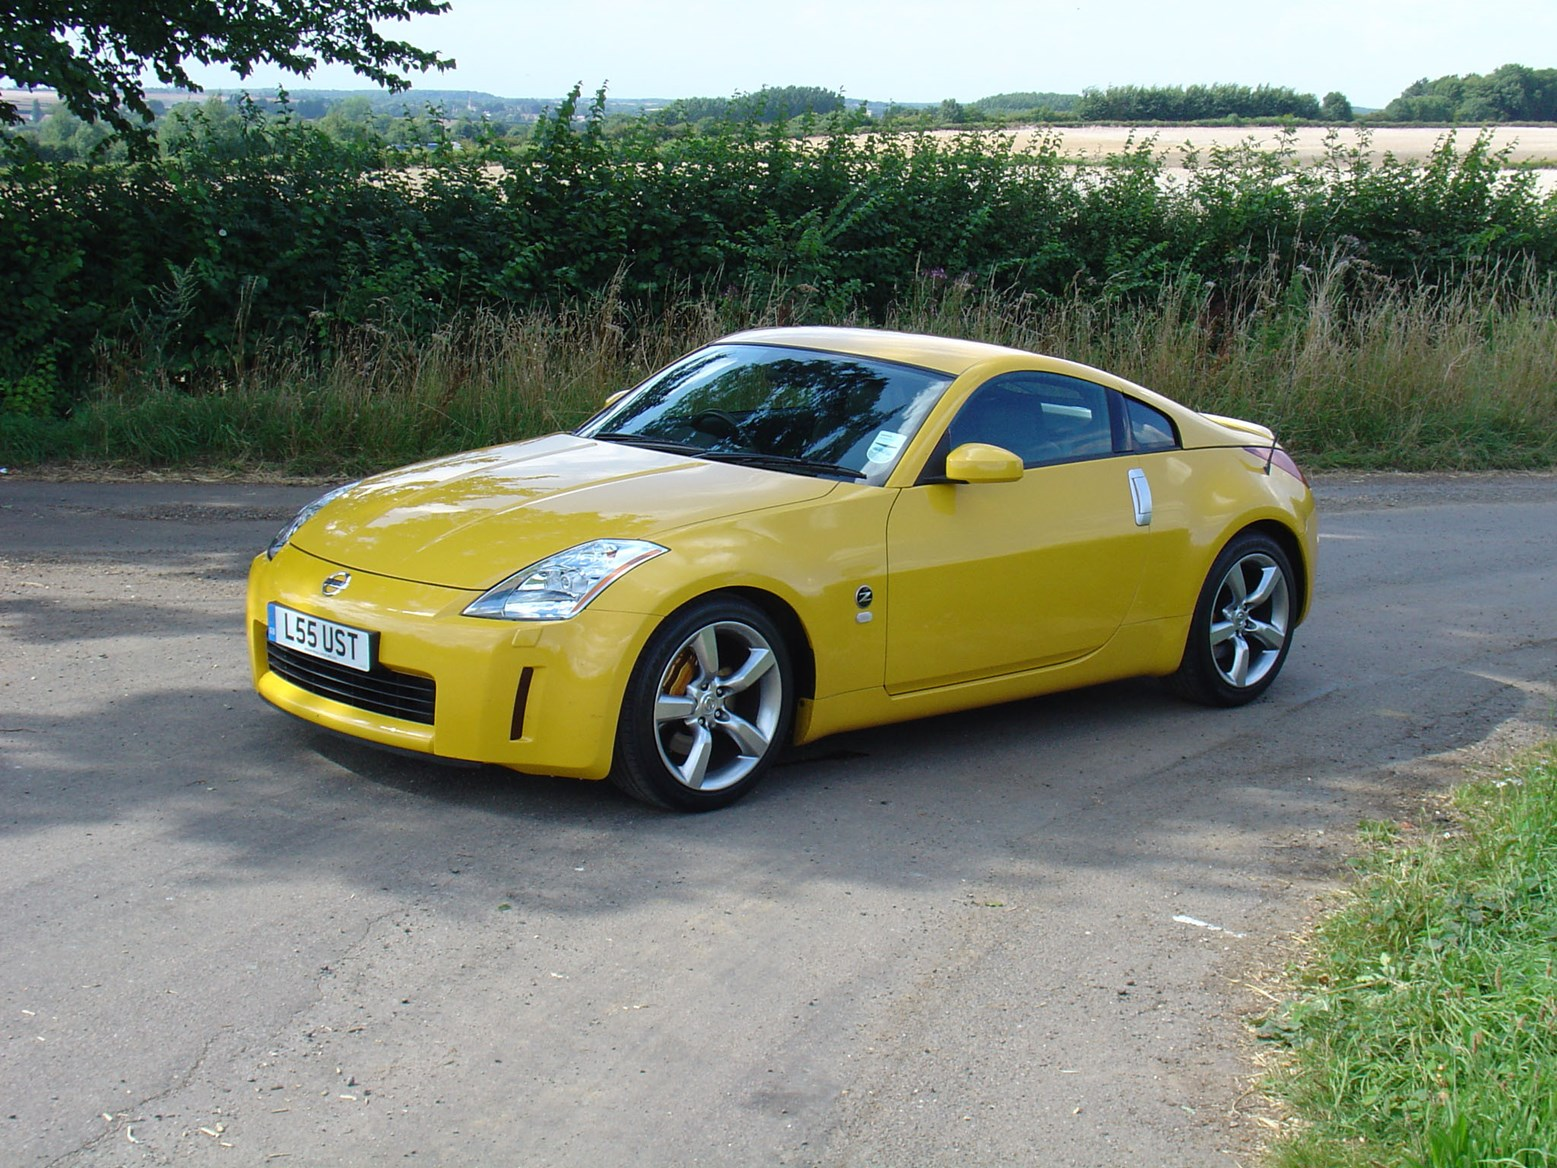 nissan 350z coupé (2003 - 2010) running costs | parkers